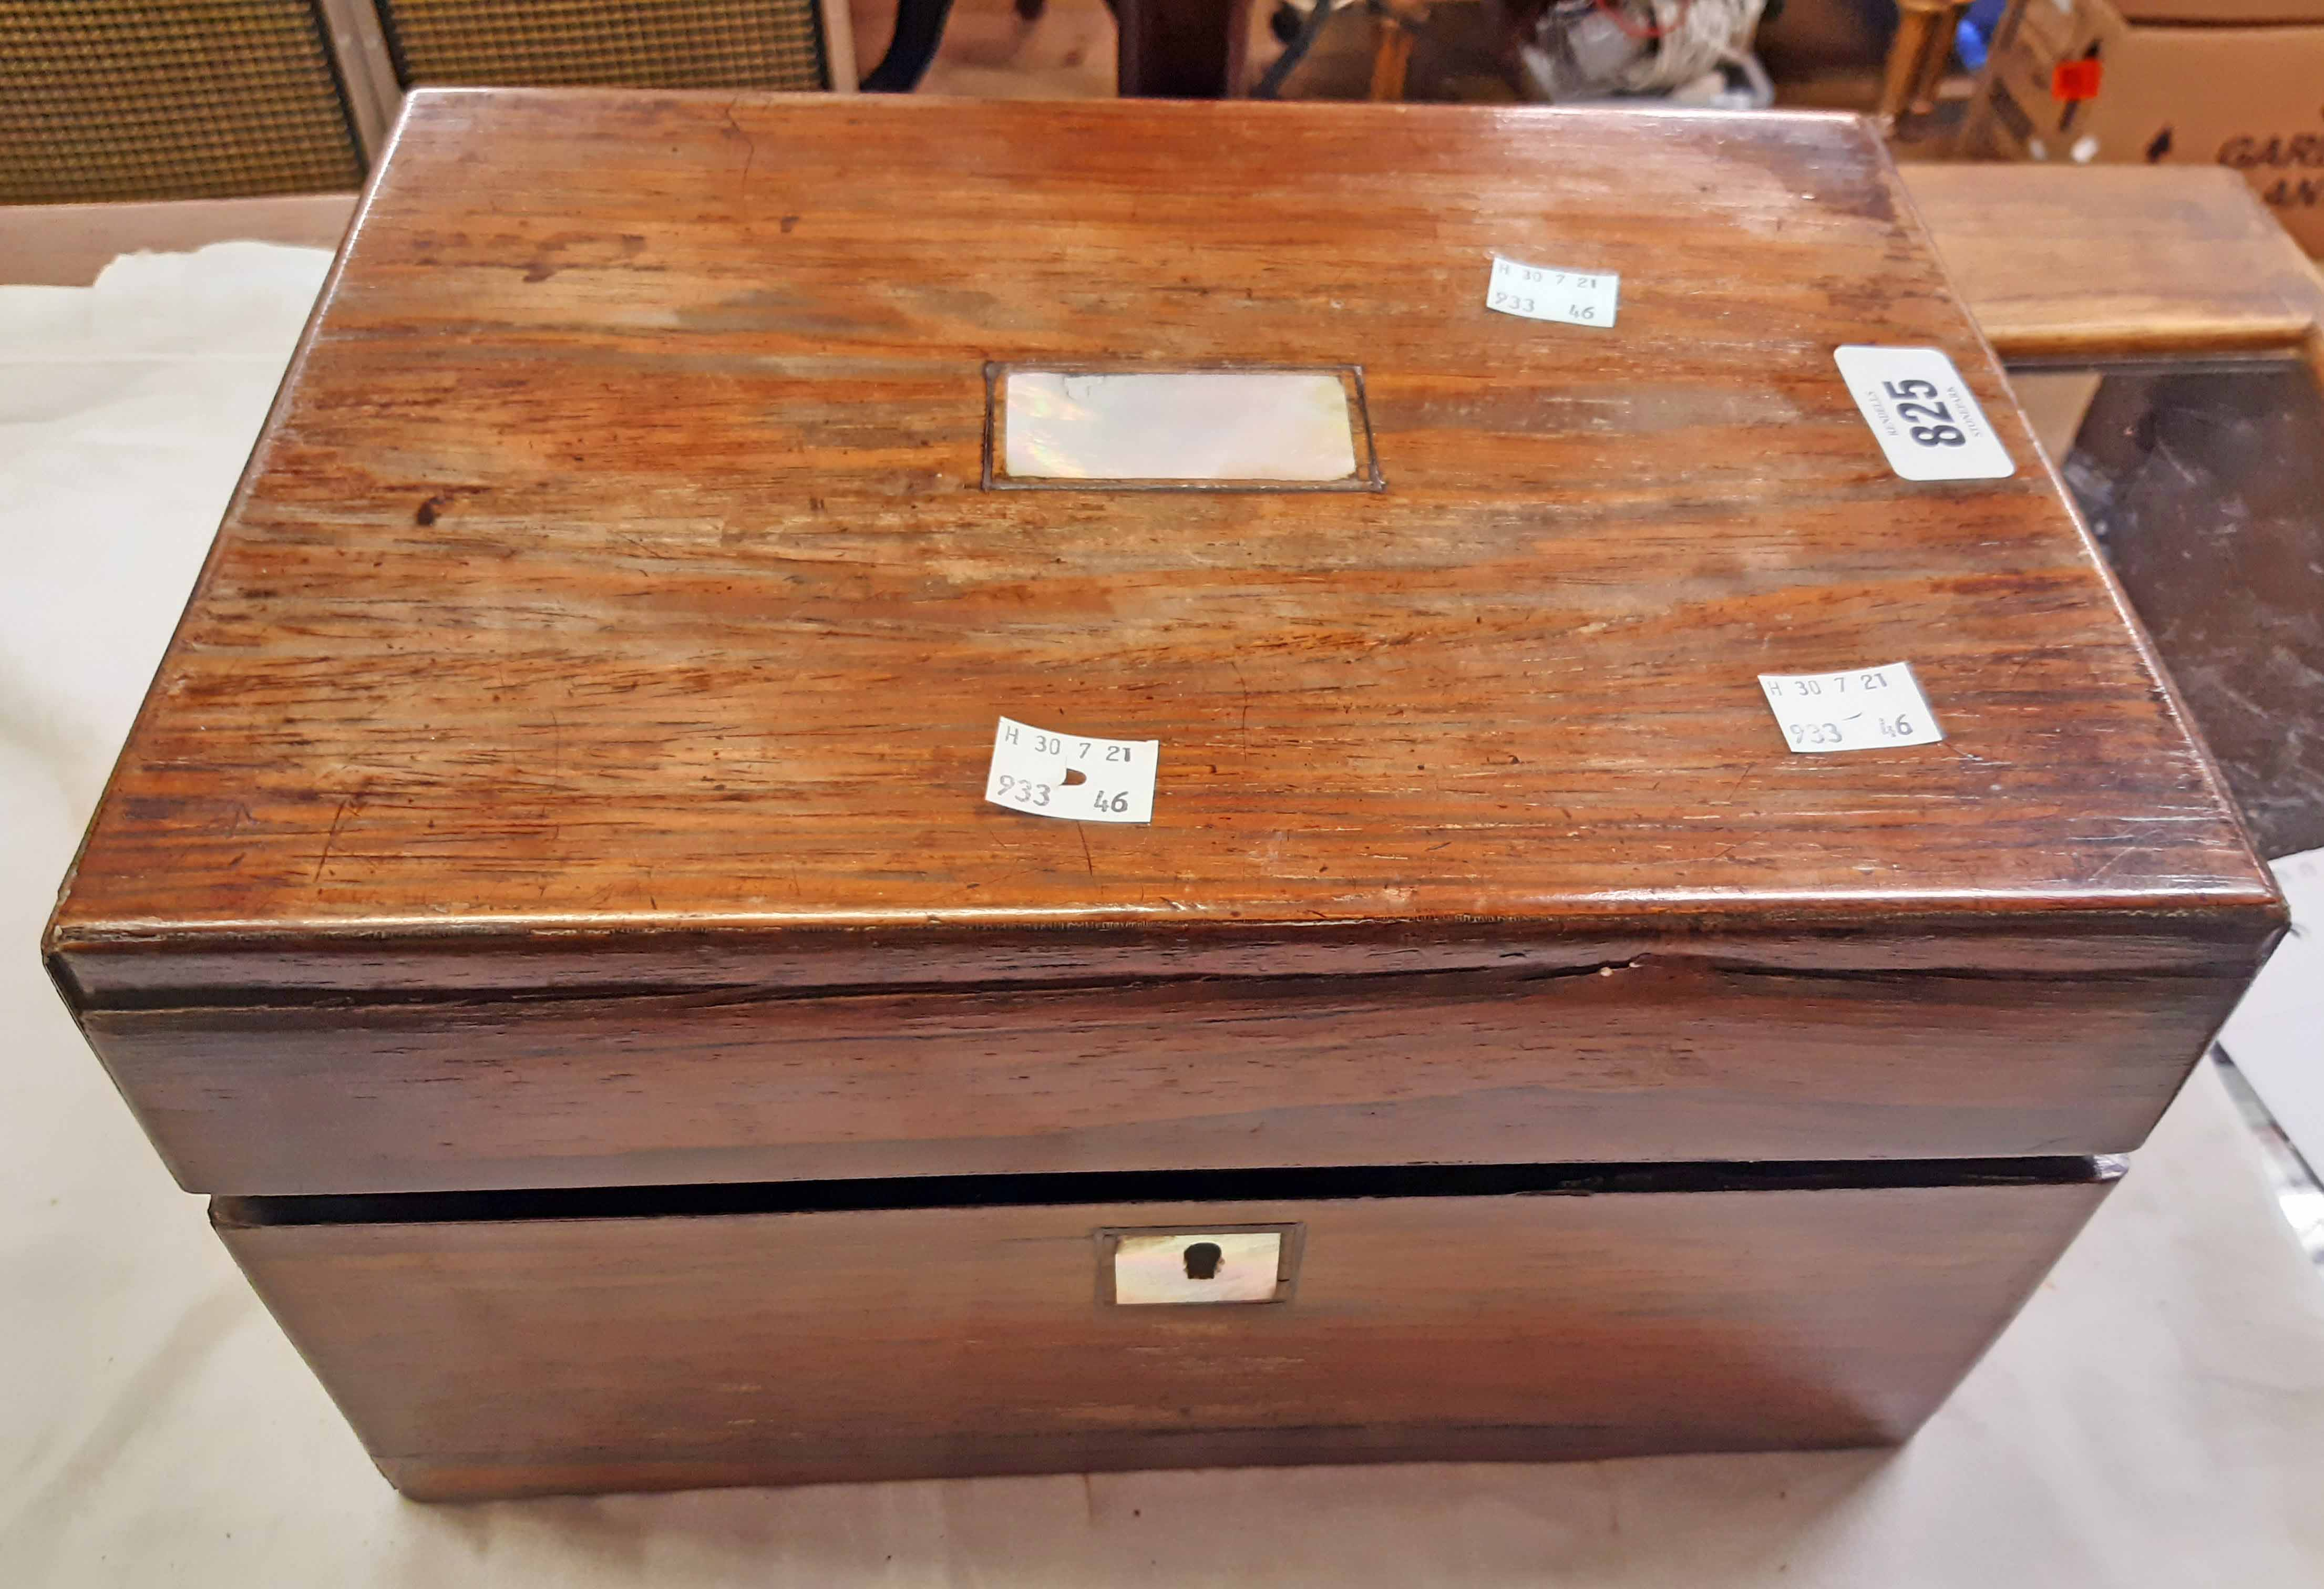 A Victorian rosewood veneered travelling vanity box, the interior fitted with glass jars and boxes